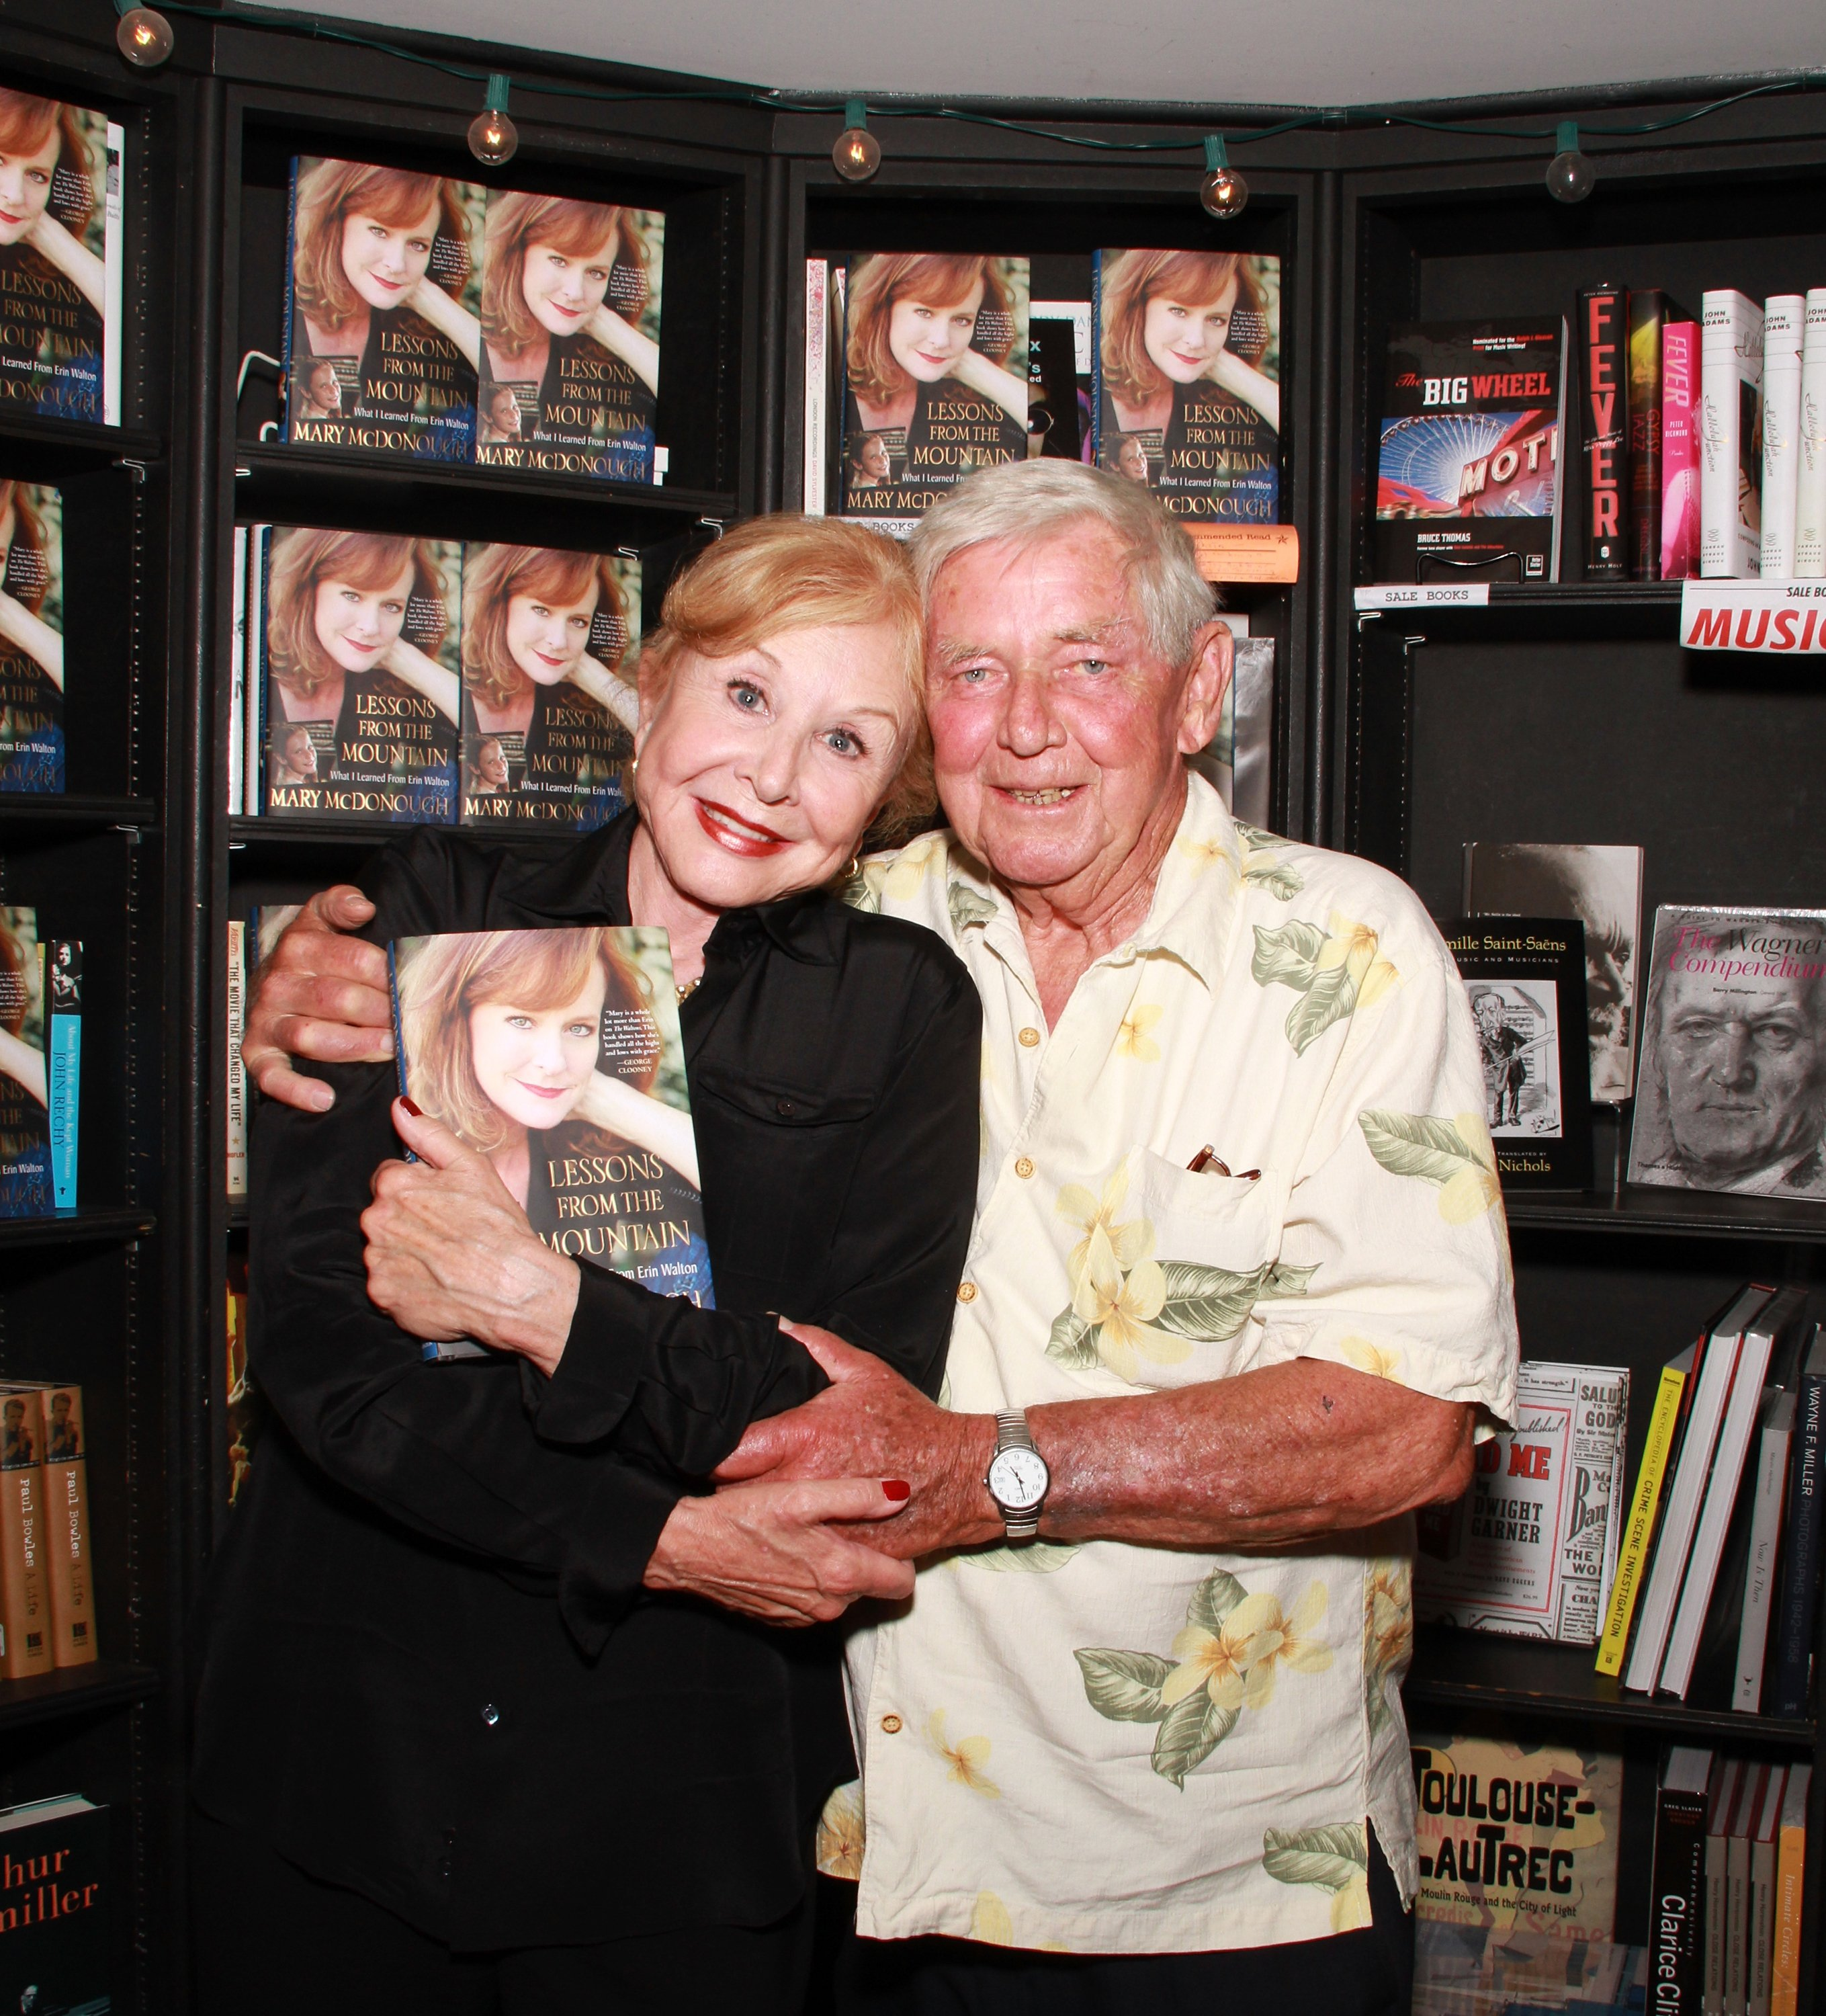 Image Credits: Getty Images / Brian Putnam | Actors Michael Learned and Ralph Waite attend the signing of Mary McDonough's book 'Lessons From the Mountain: What I Learned From Erin Walton' at Book Soup on April 16, 2011 in West Hollywood, California.